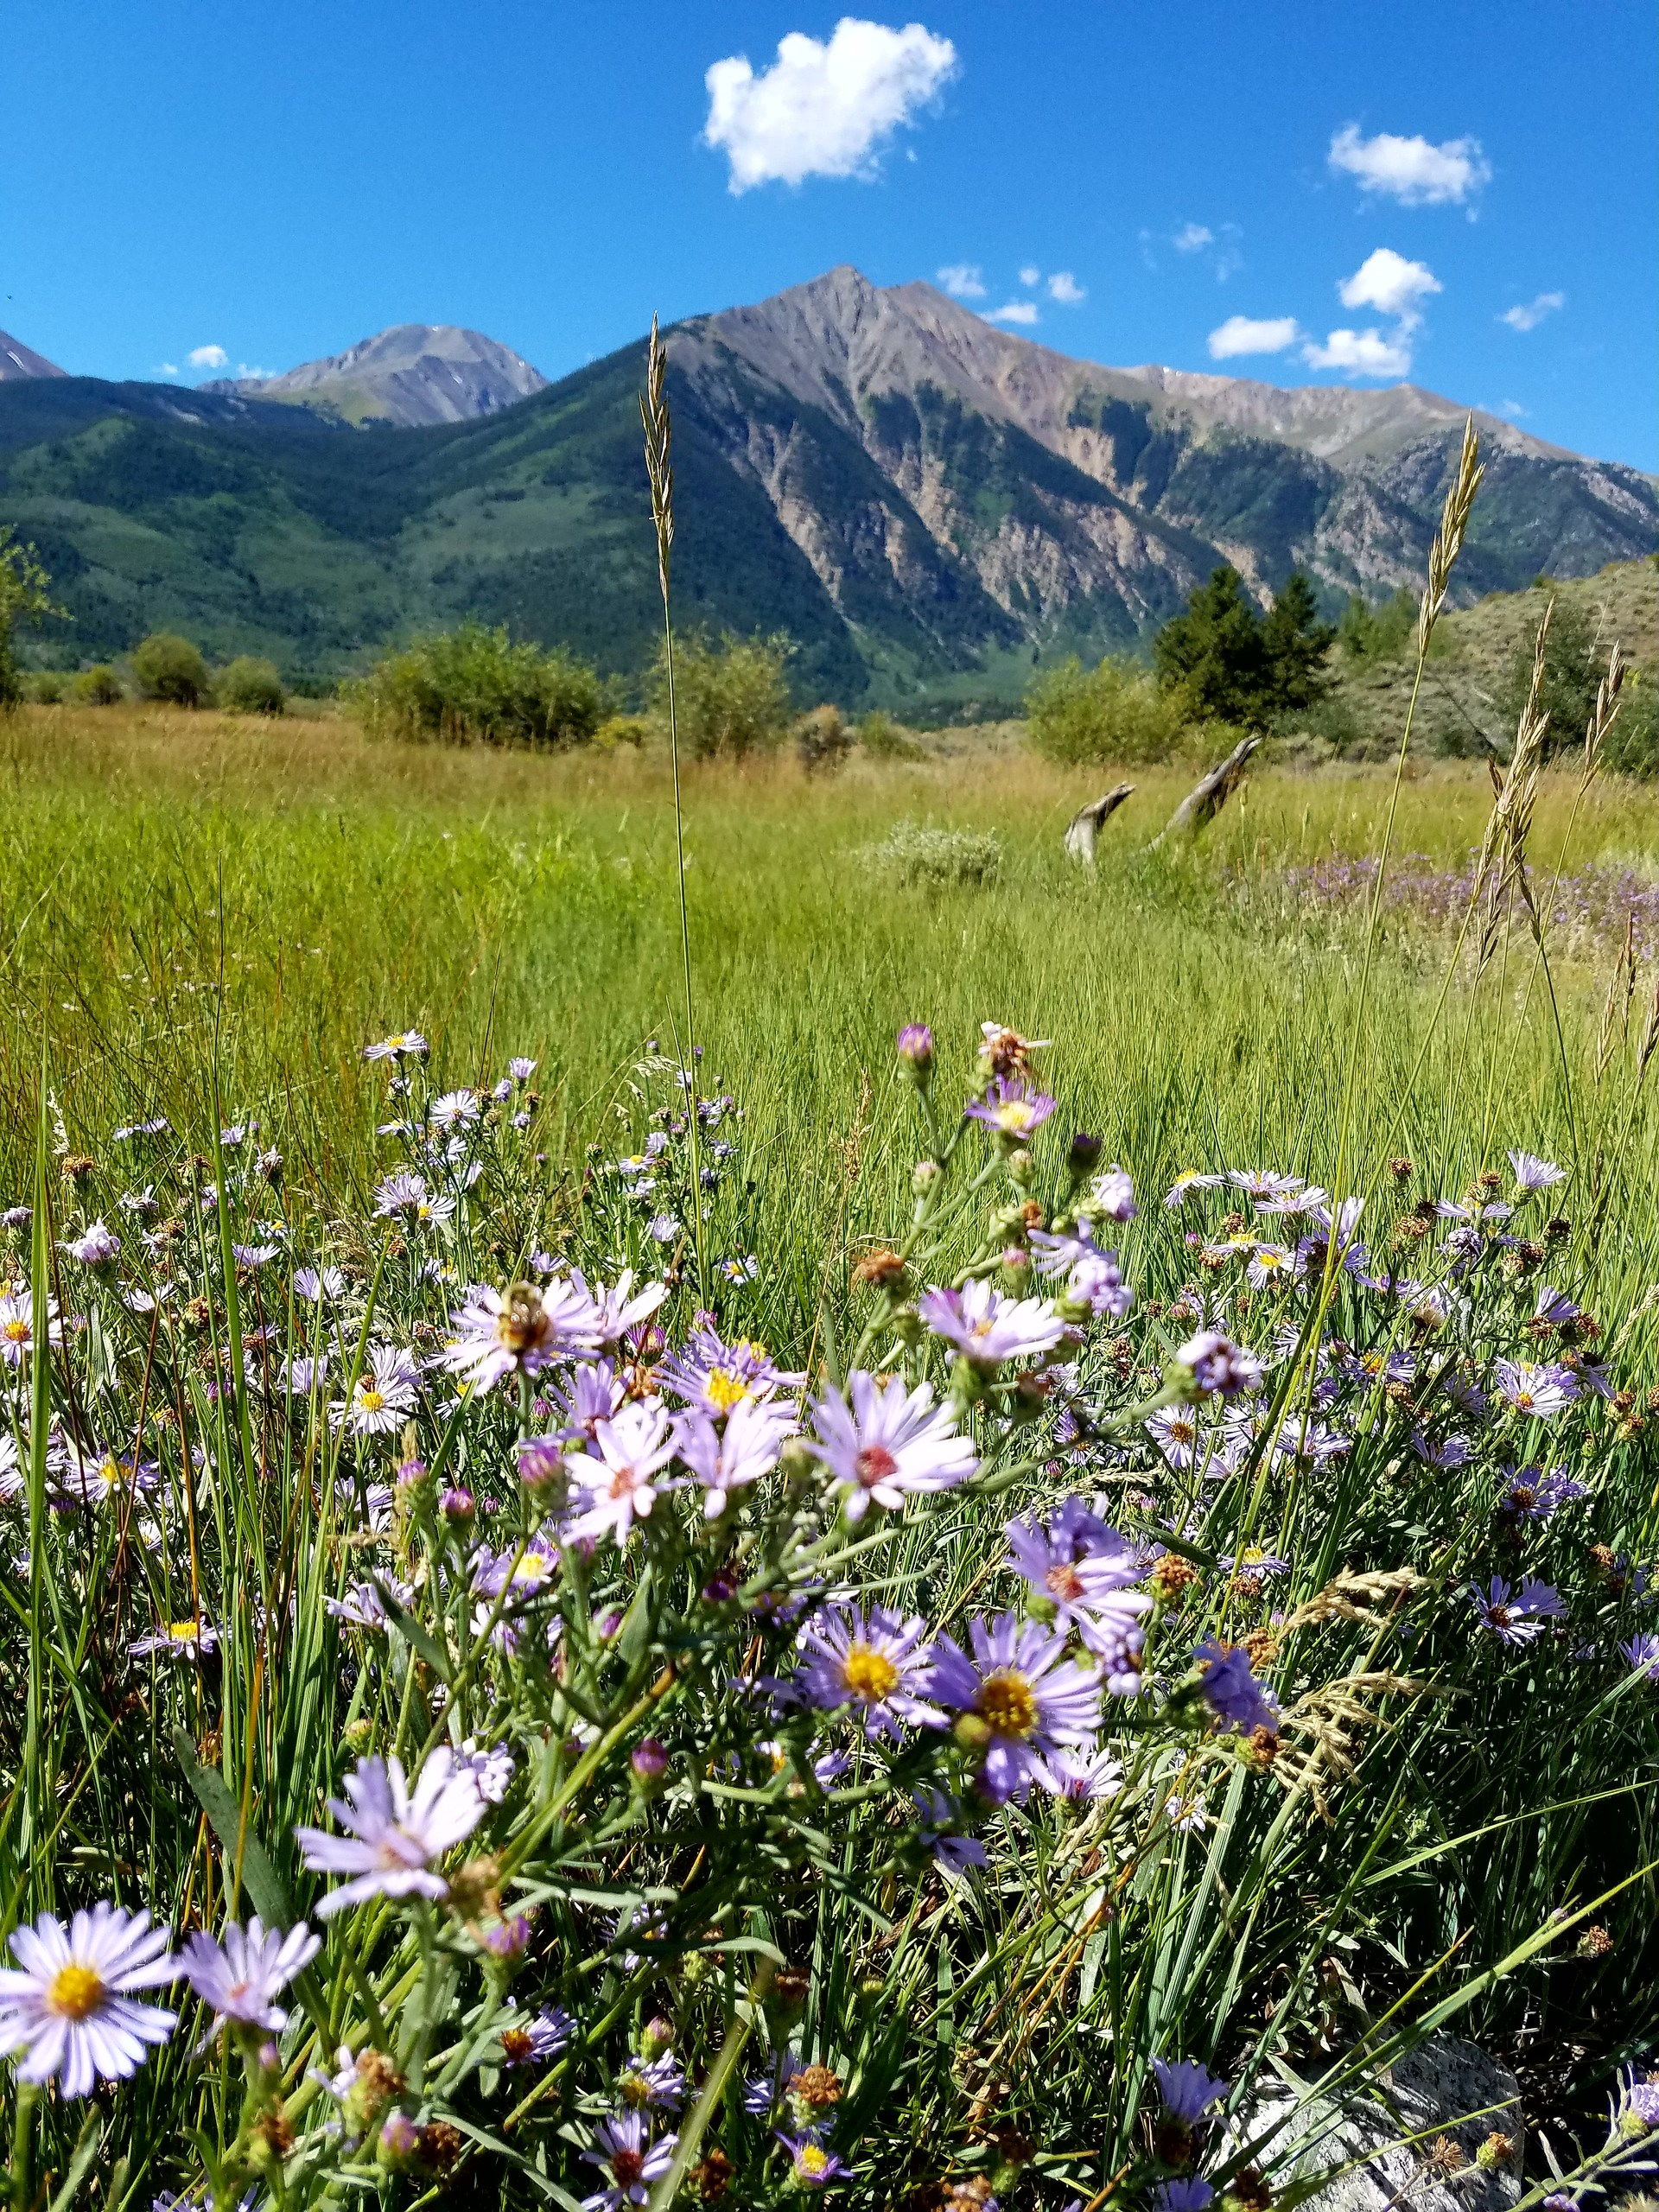 wildflowers in the mountains Colorado